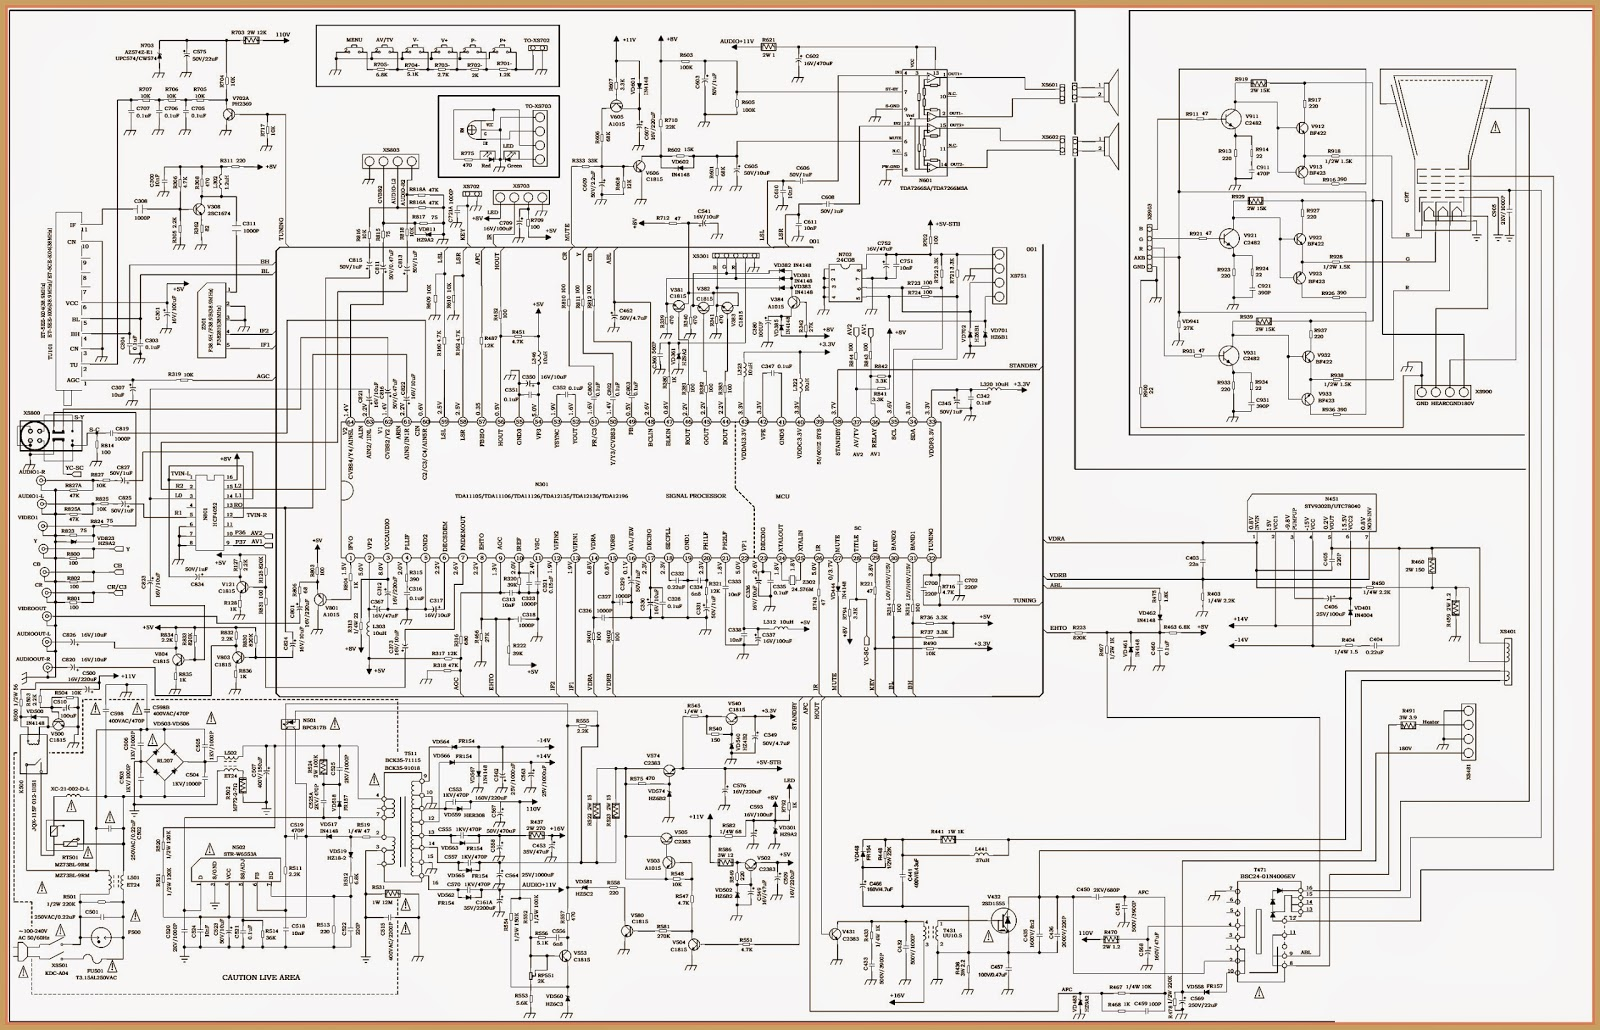 small resolution of color tv kit circuit diagram full tda 11106 stv9302 based kitchen circuit diagram circuit diagram kit